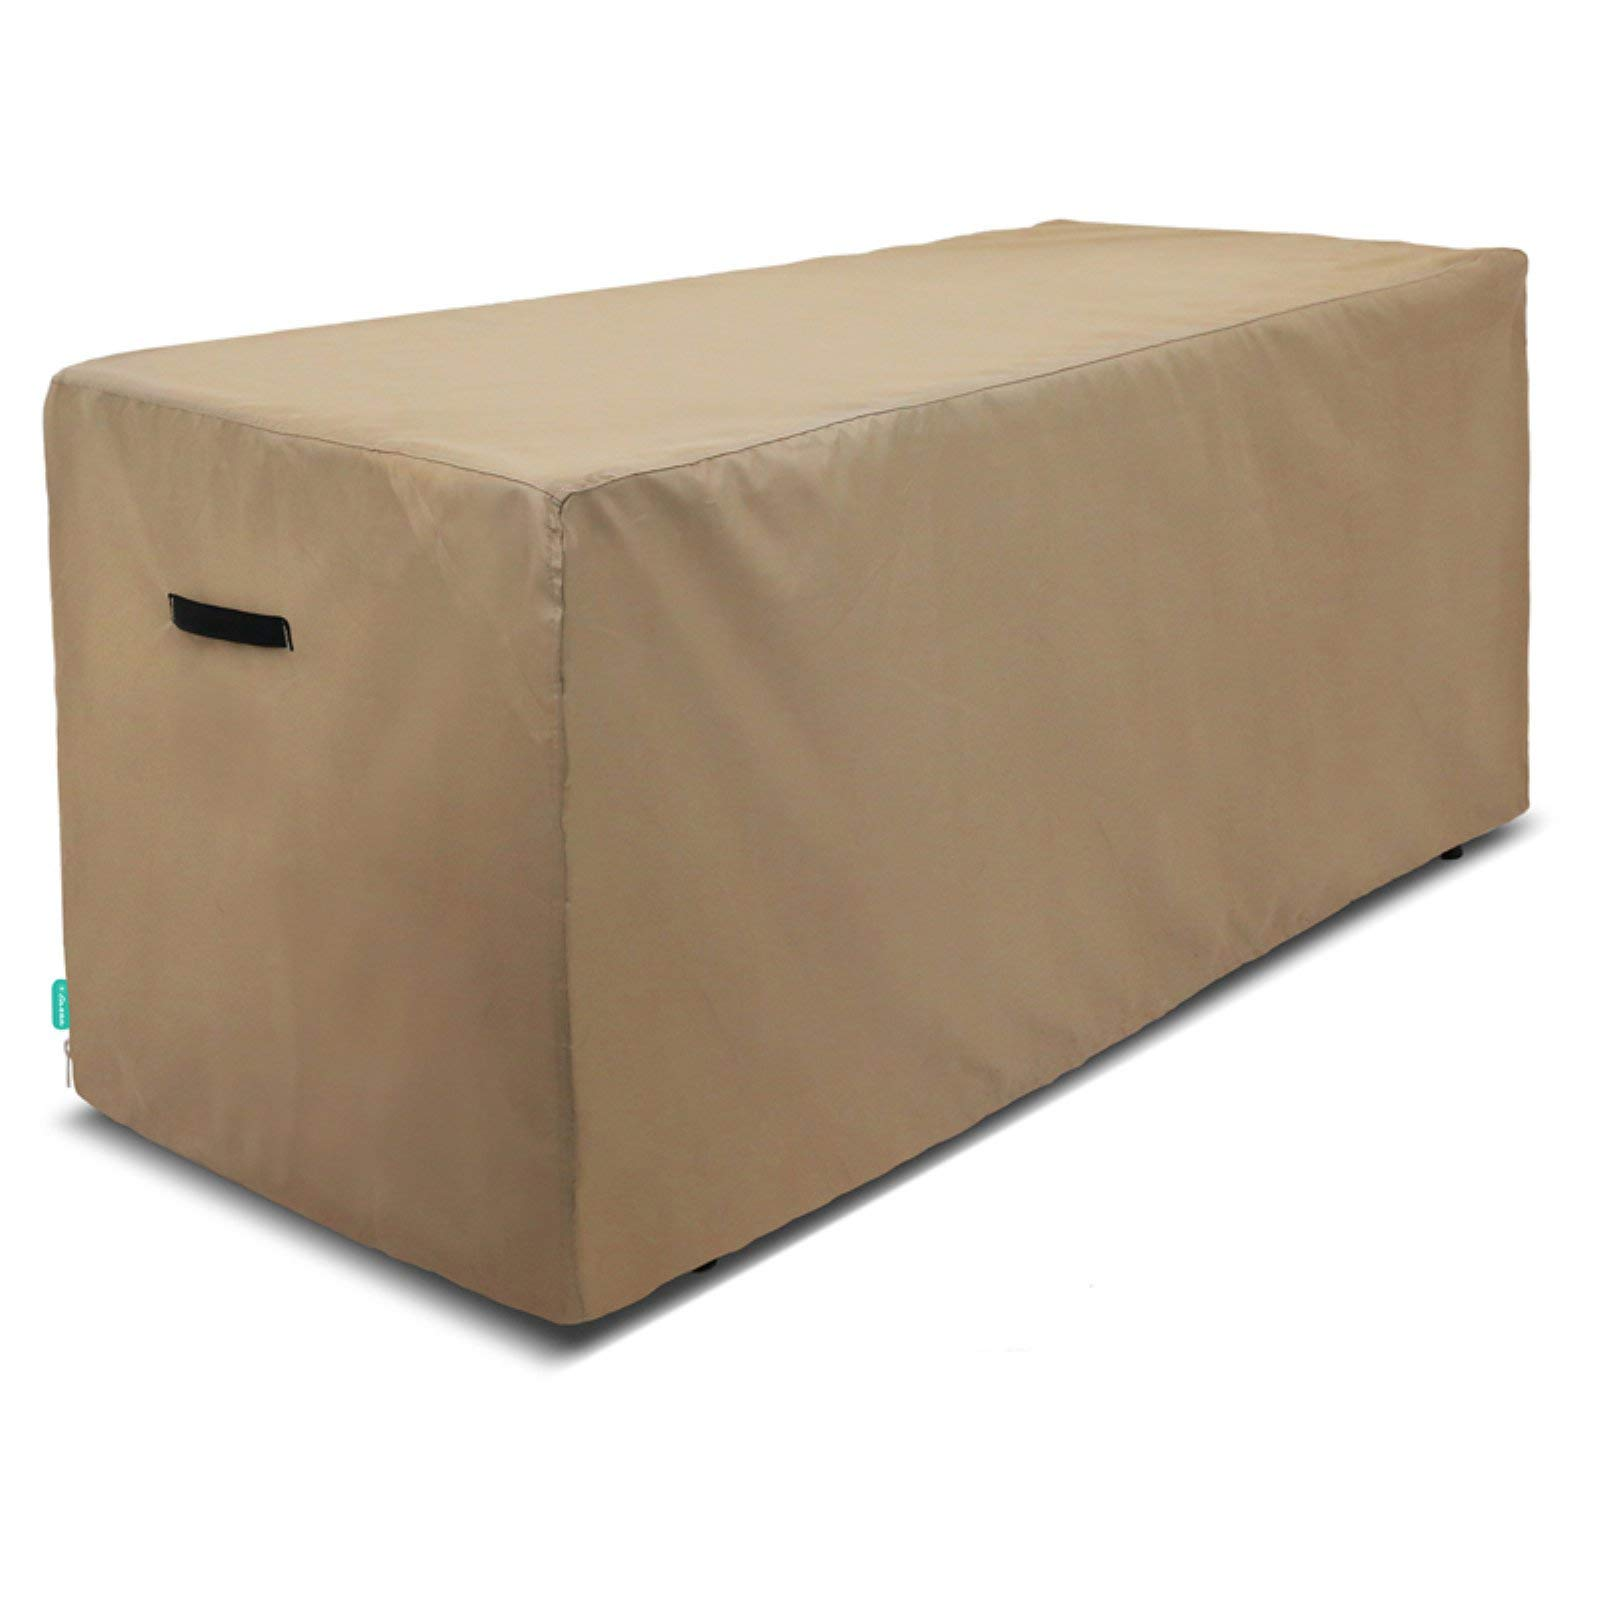 OKSLO Universal outdoor ufcoz462618pt patio rectangular ottoman cover